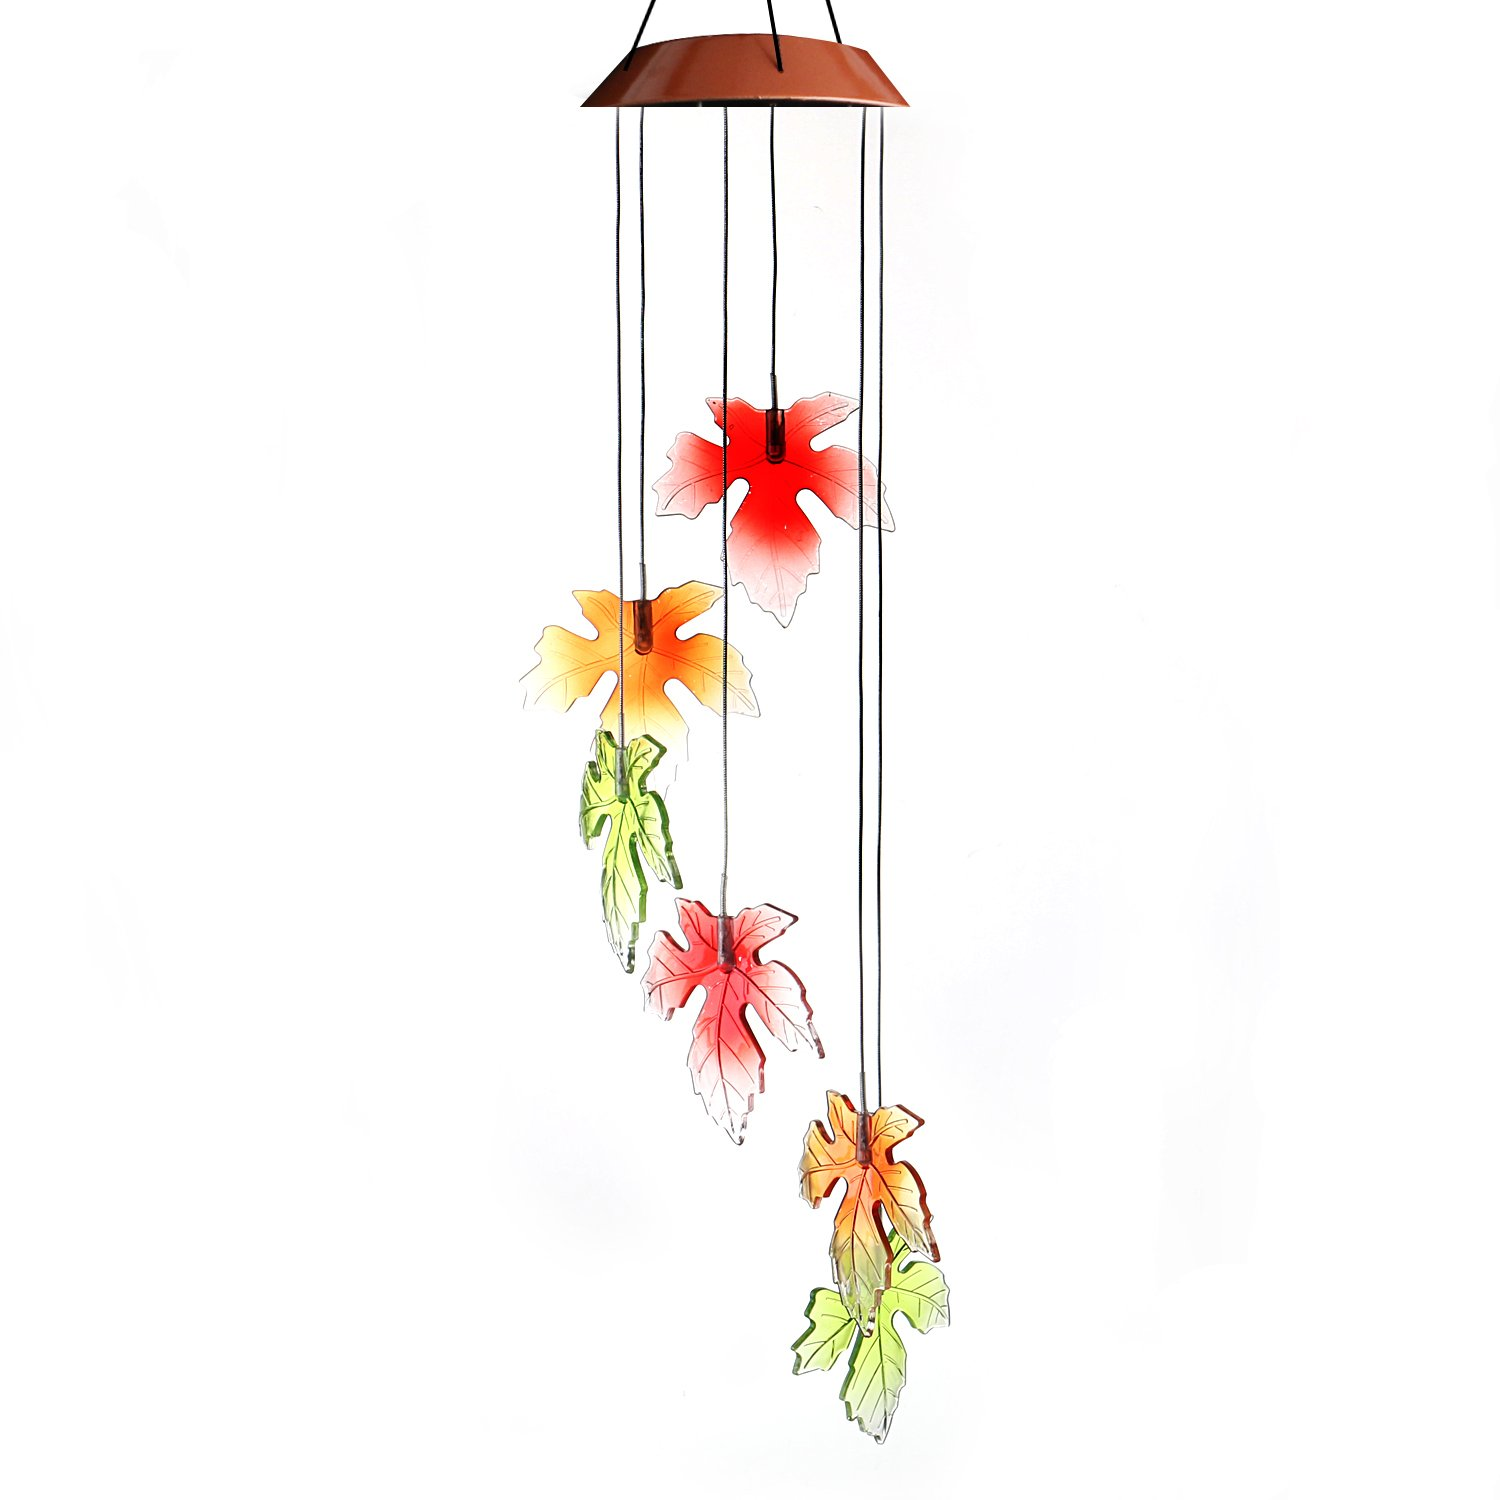 Color-Changing LED Solar Mobile Wind Chime Glowing Lights Waterproof Maple Leaf For Home/ Party/ Night Garden Decor